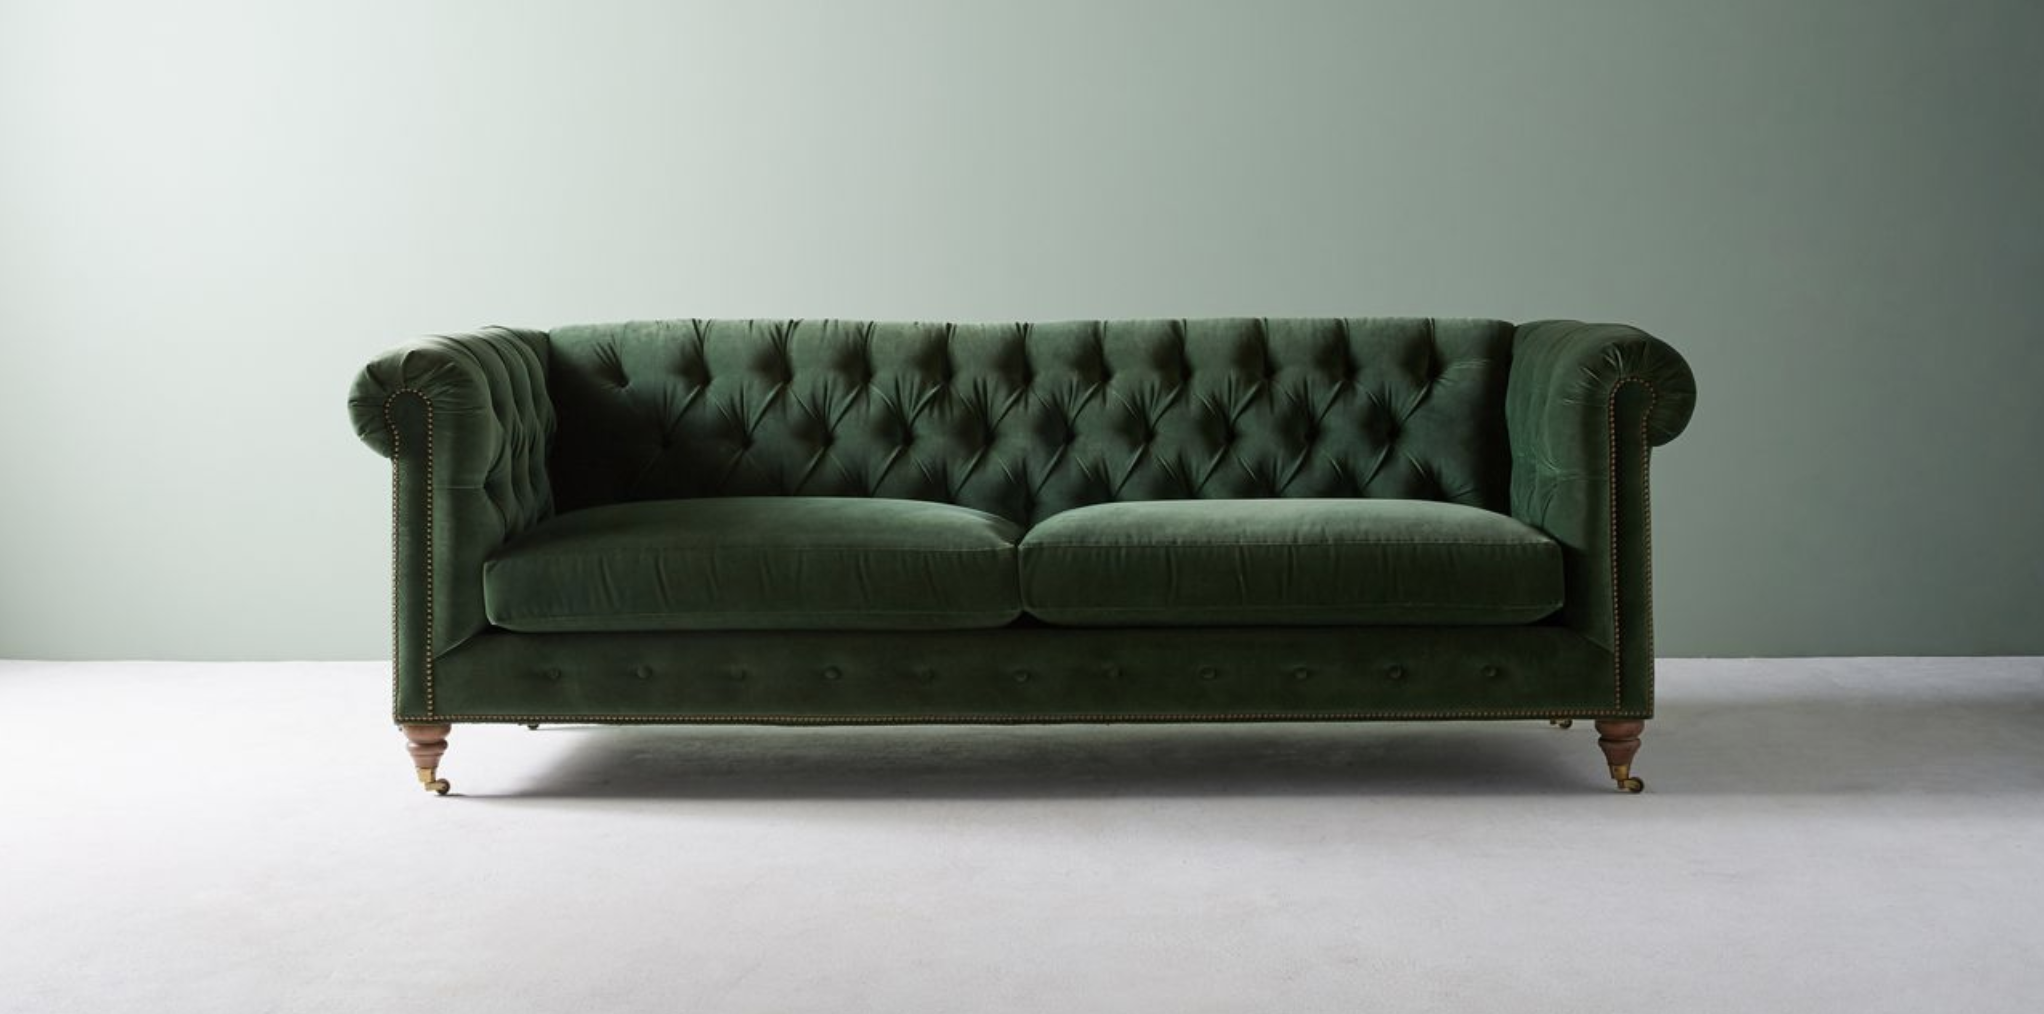 Anthropologie Lyre Chesterfield Two-Cushion Sofa, starting at $2,298.00